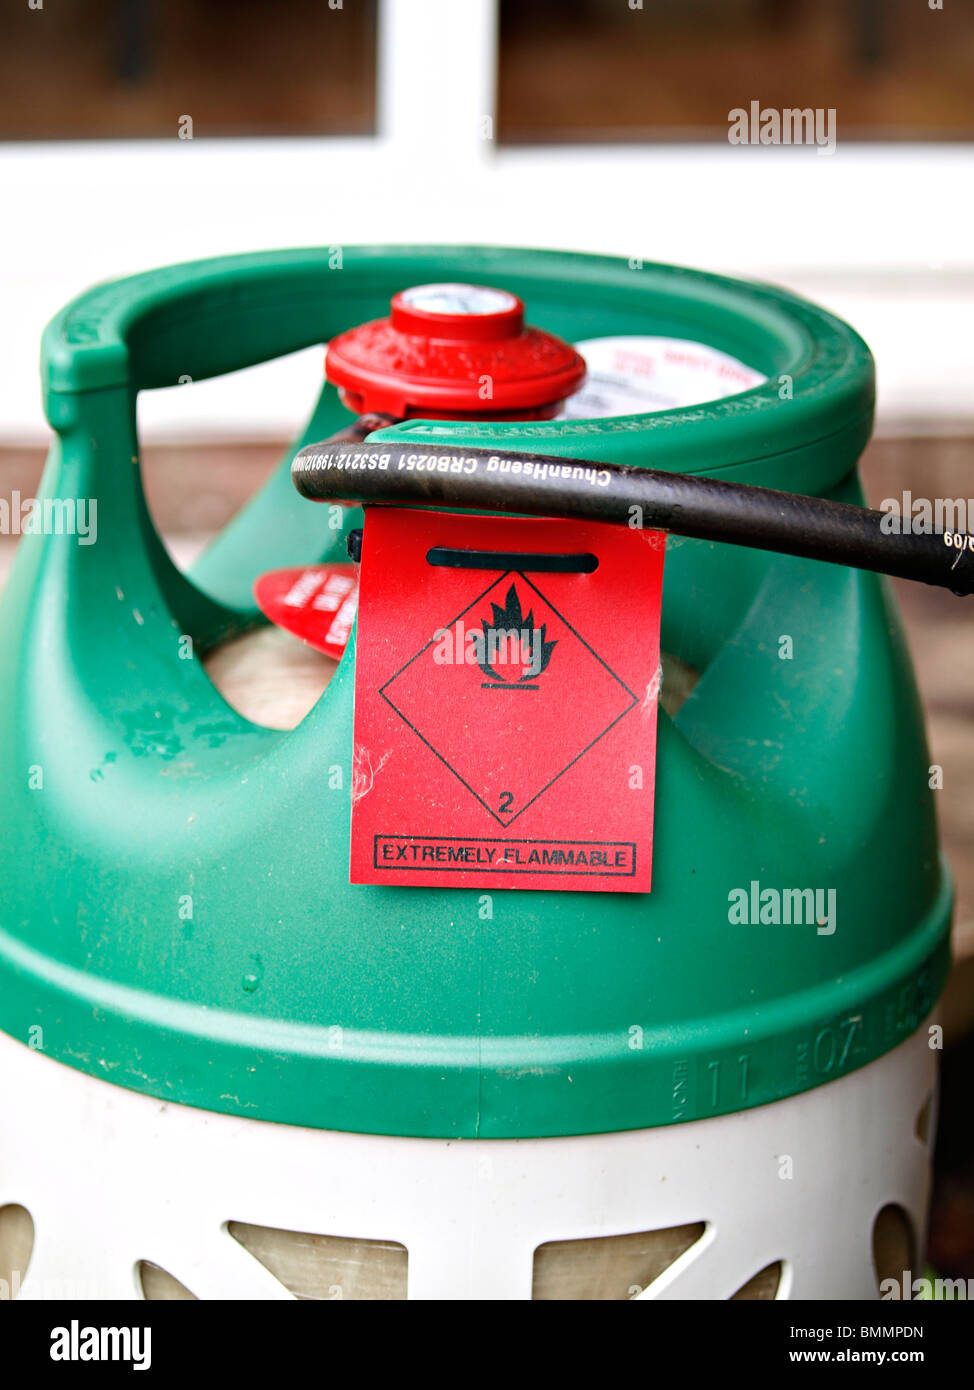 Barbeque gas is extremely flammable and should be handled with care - Stock Image